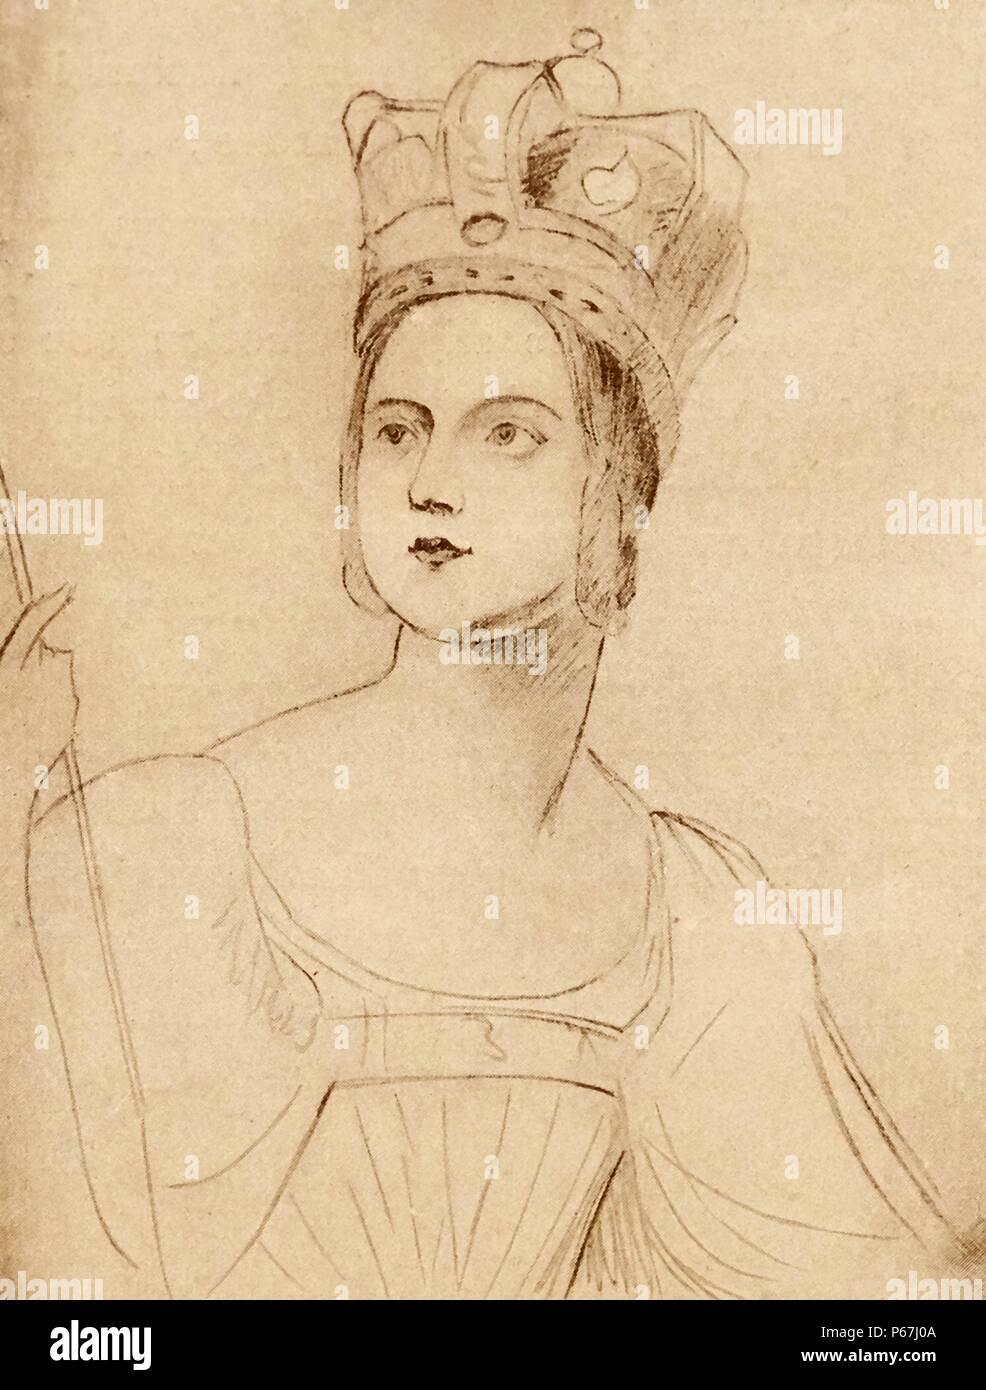 Sketch by george hayter for the coronation of queen victoria of great britain took place on 28 june 1838